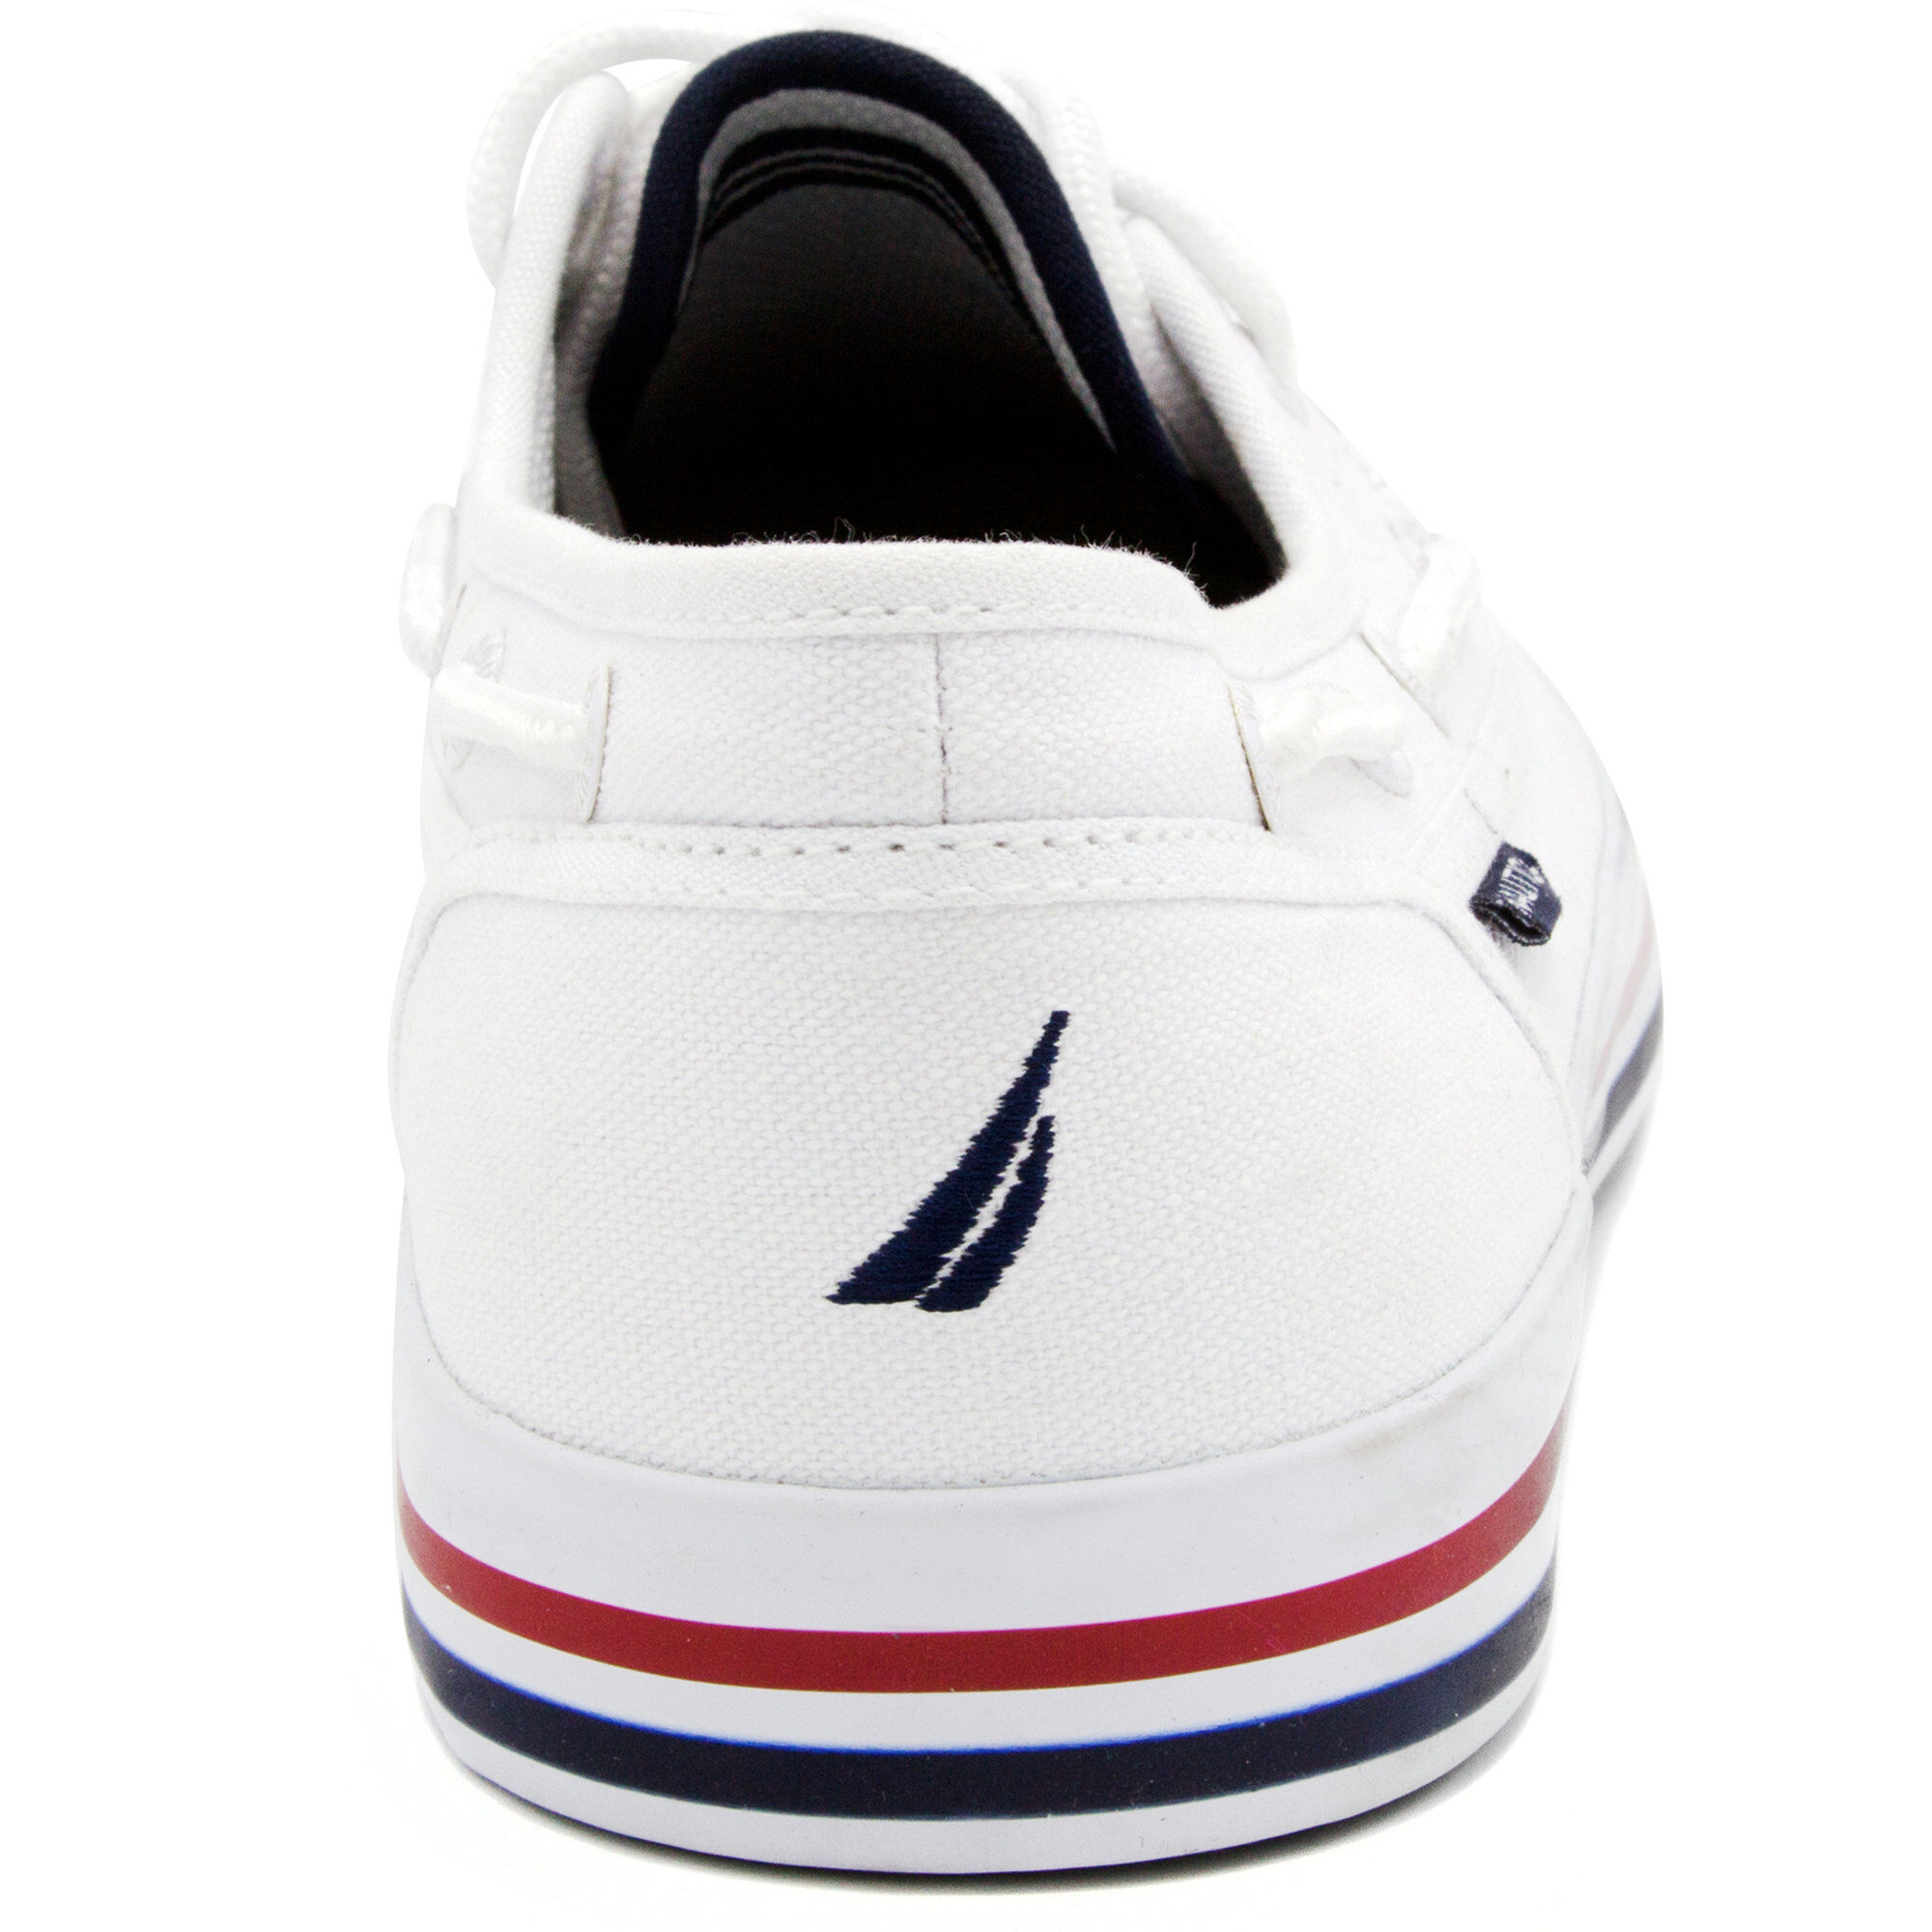 Spinnaker Boat Shoes - White | Nautica